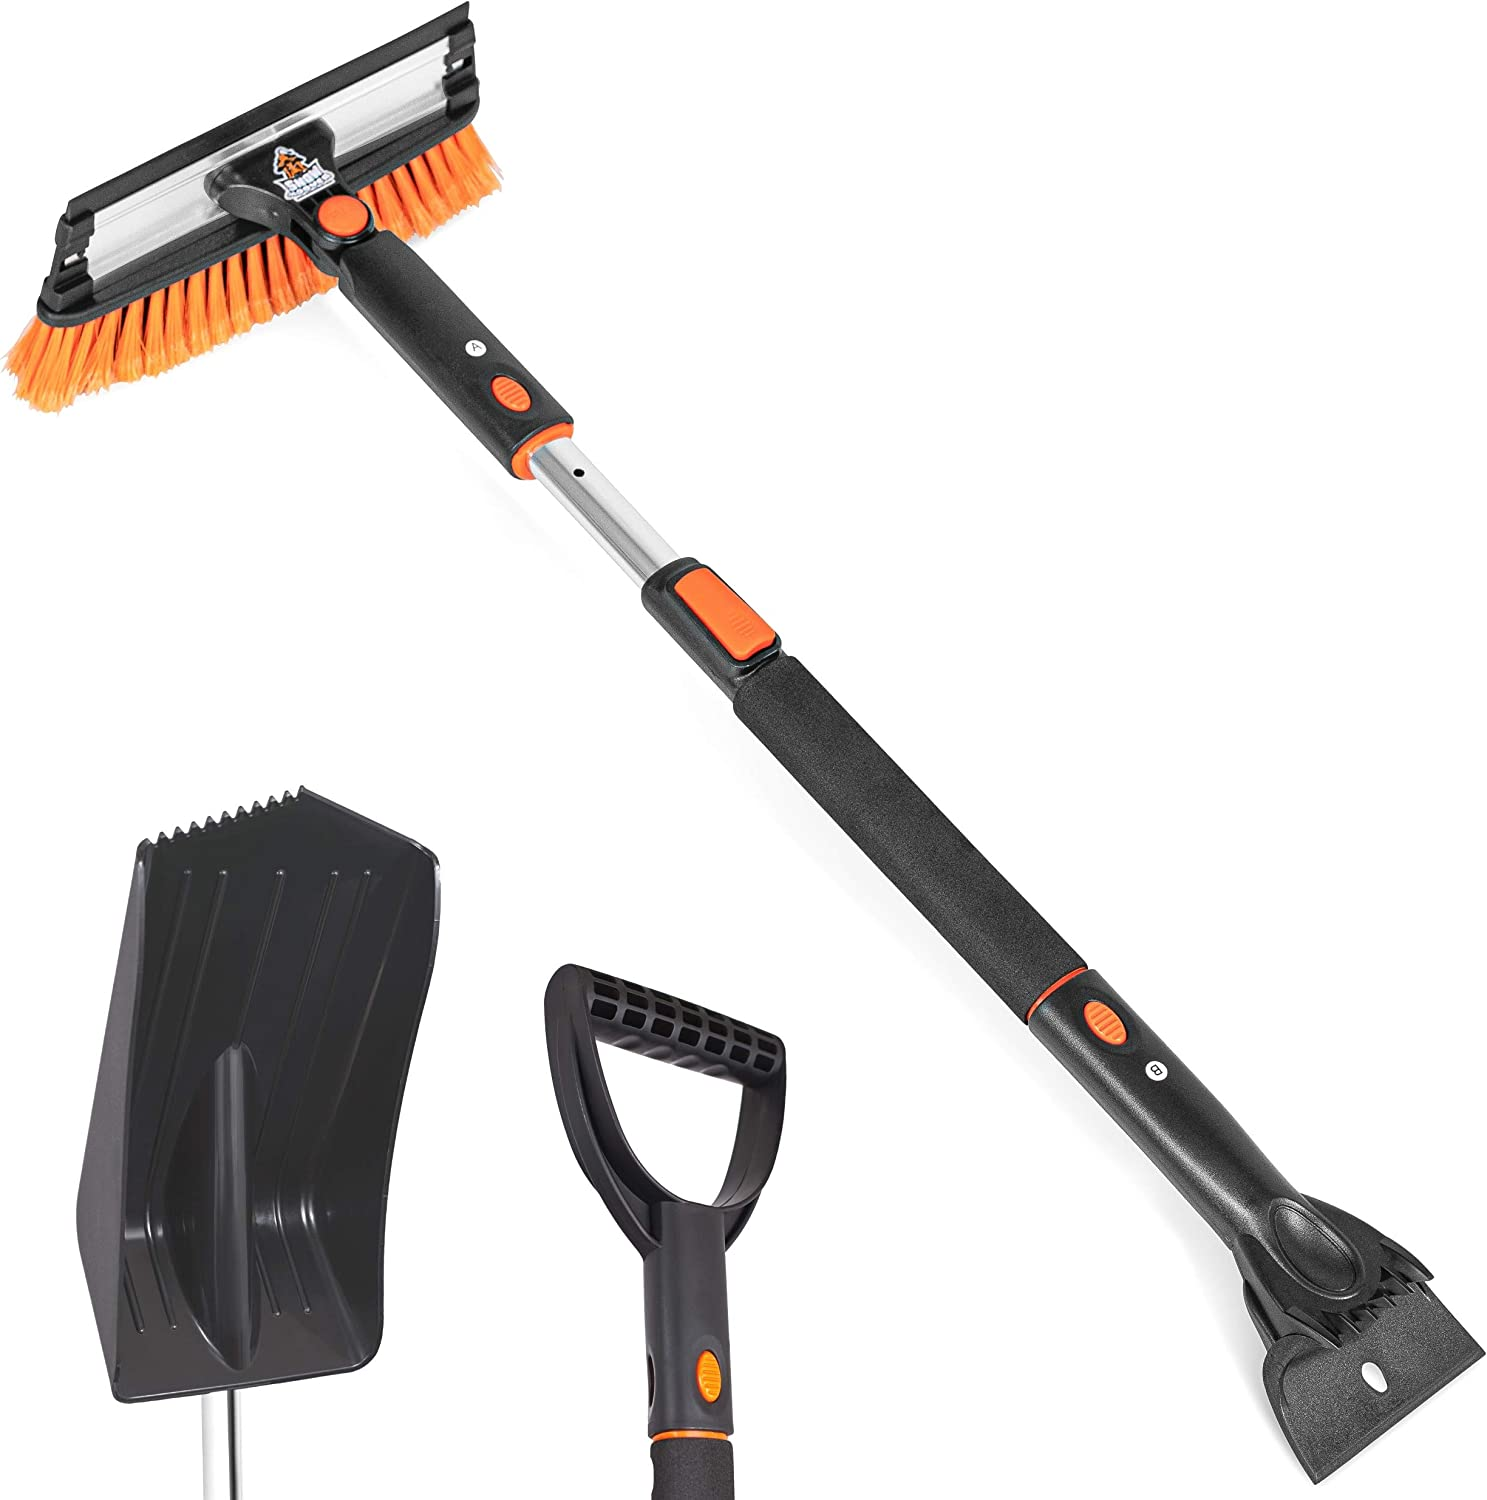 Snow Moover Extendable Snow Brush and Ice Scraper